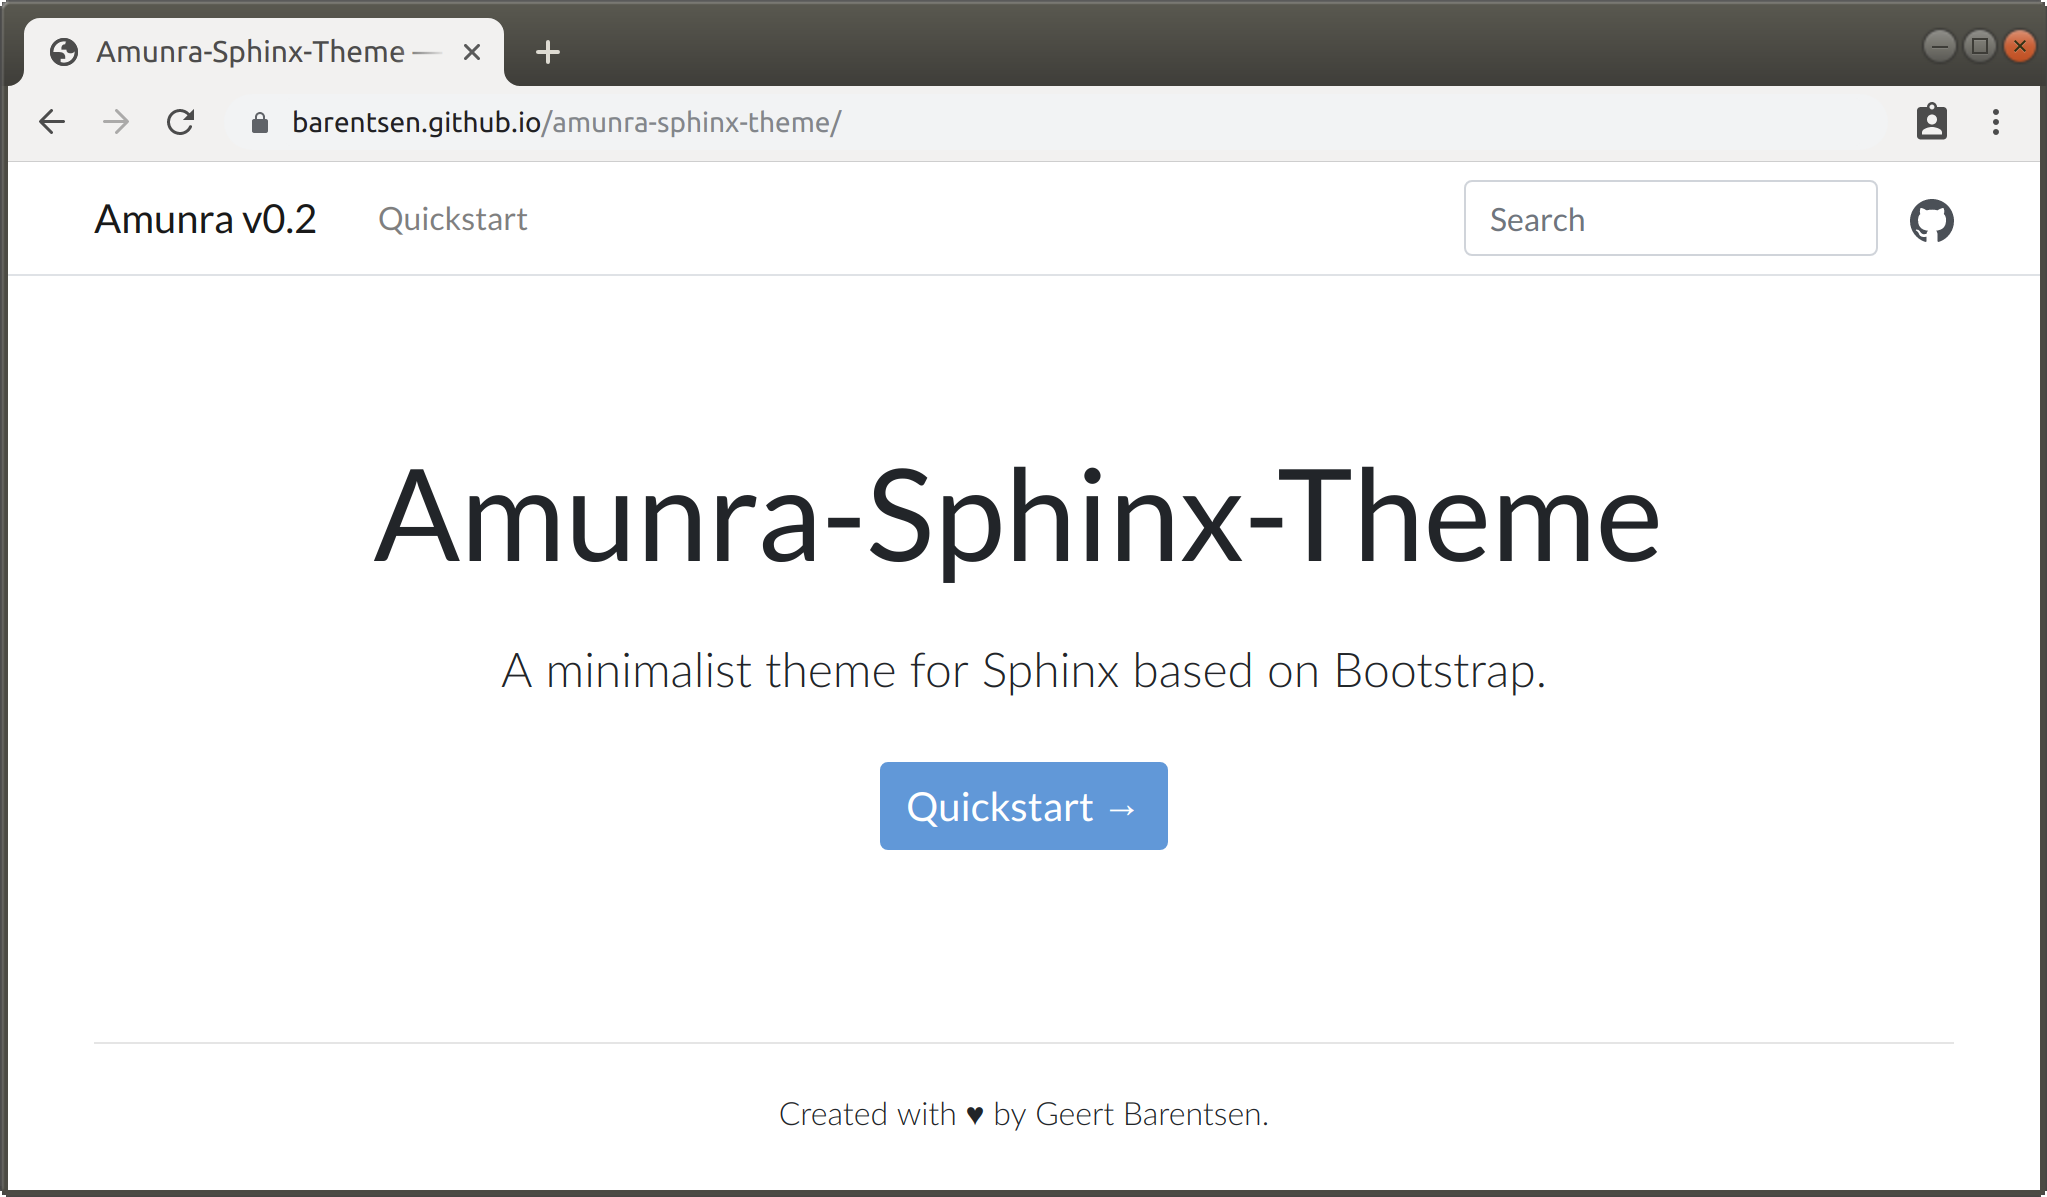 Amunra-Sphinx-Theme preview